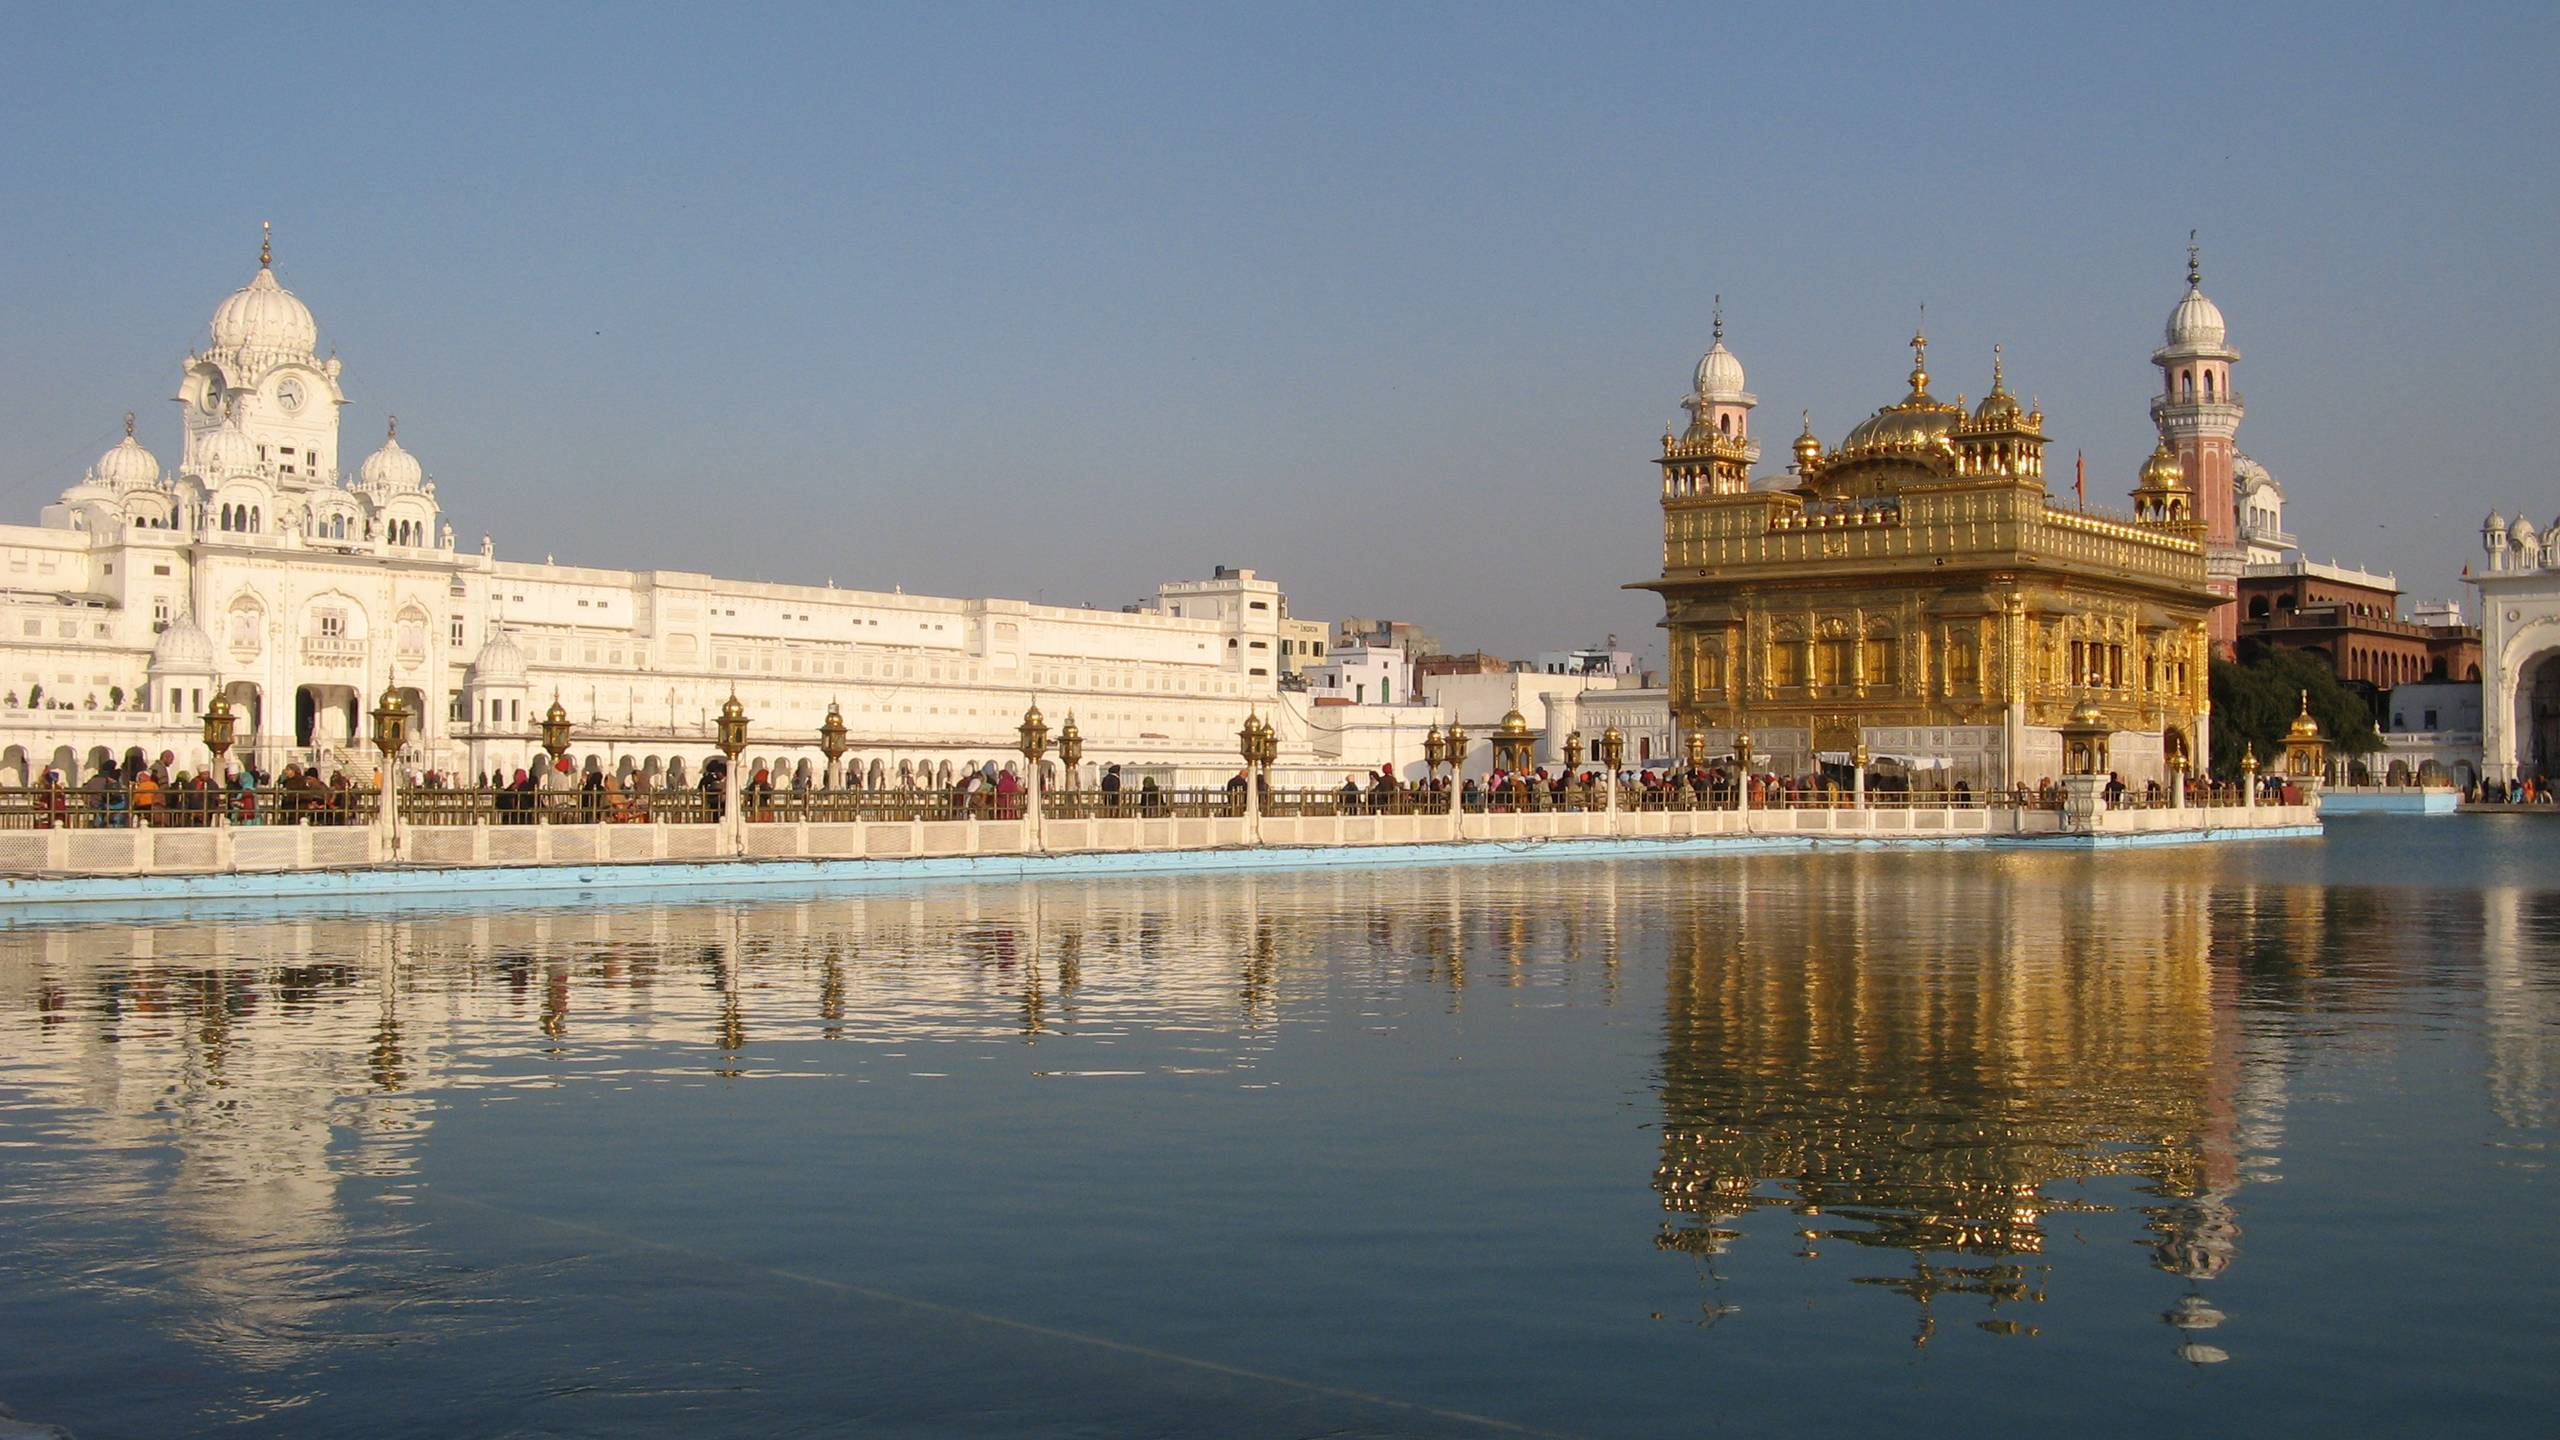 bollywood-golden-temple-amritsar-india-cute-best-hd-images - north